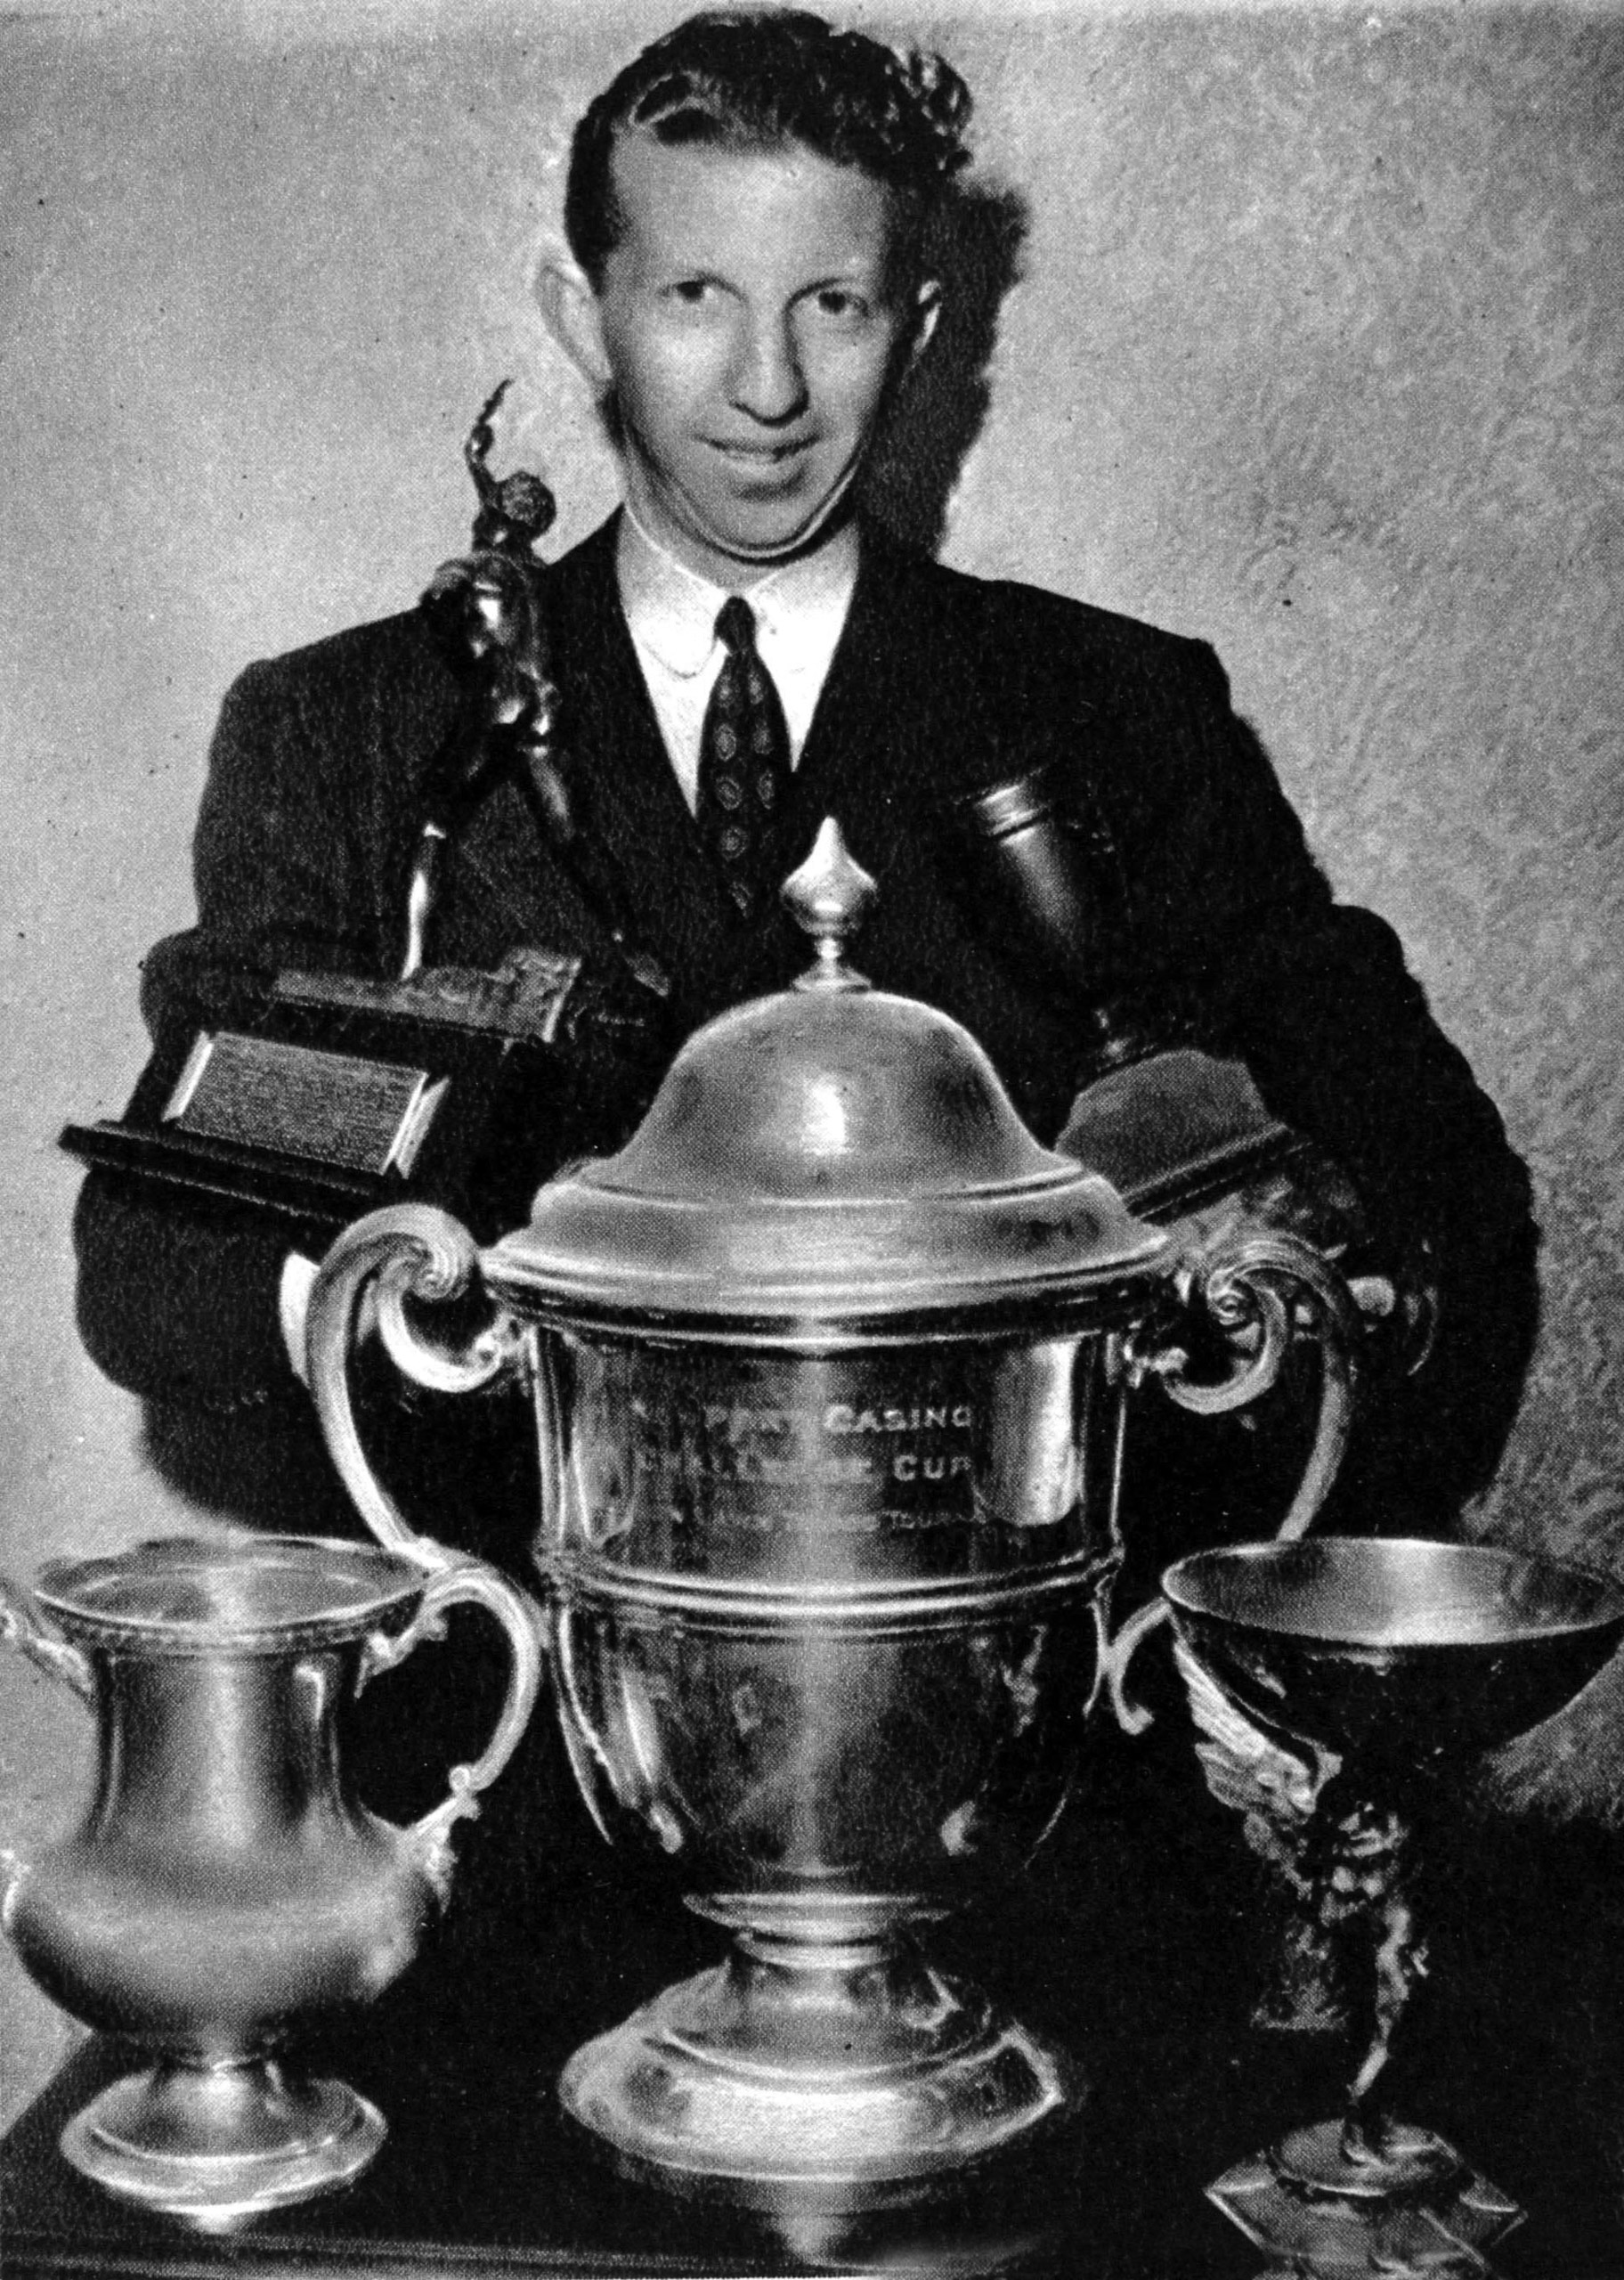 In 1938, Don Budge became the first player to win the Grand Slam.